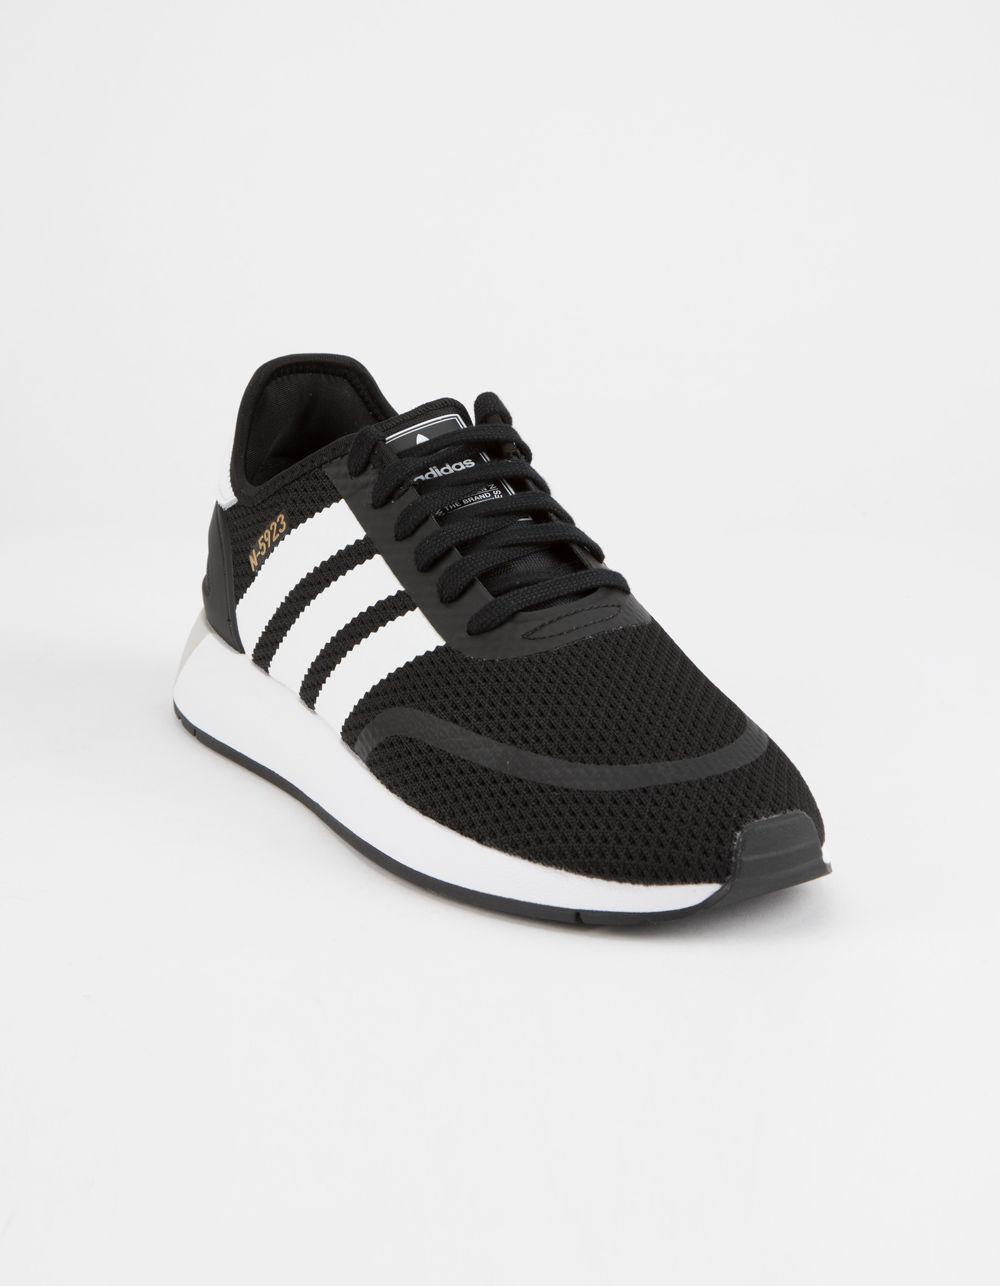 separation shoes b619d be2ba Lyst - Adidas N-5923 Mens Shoes in Black for Men